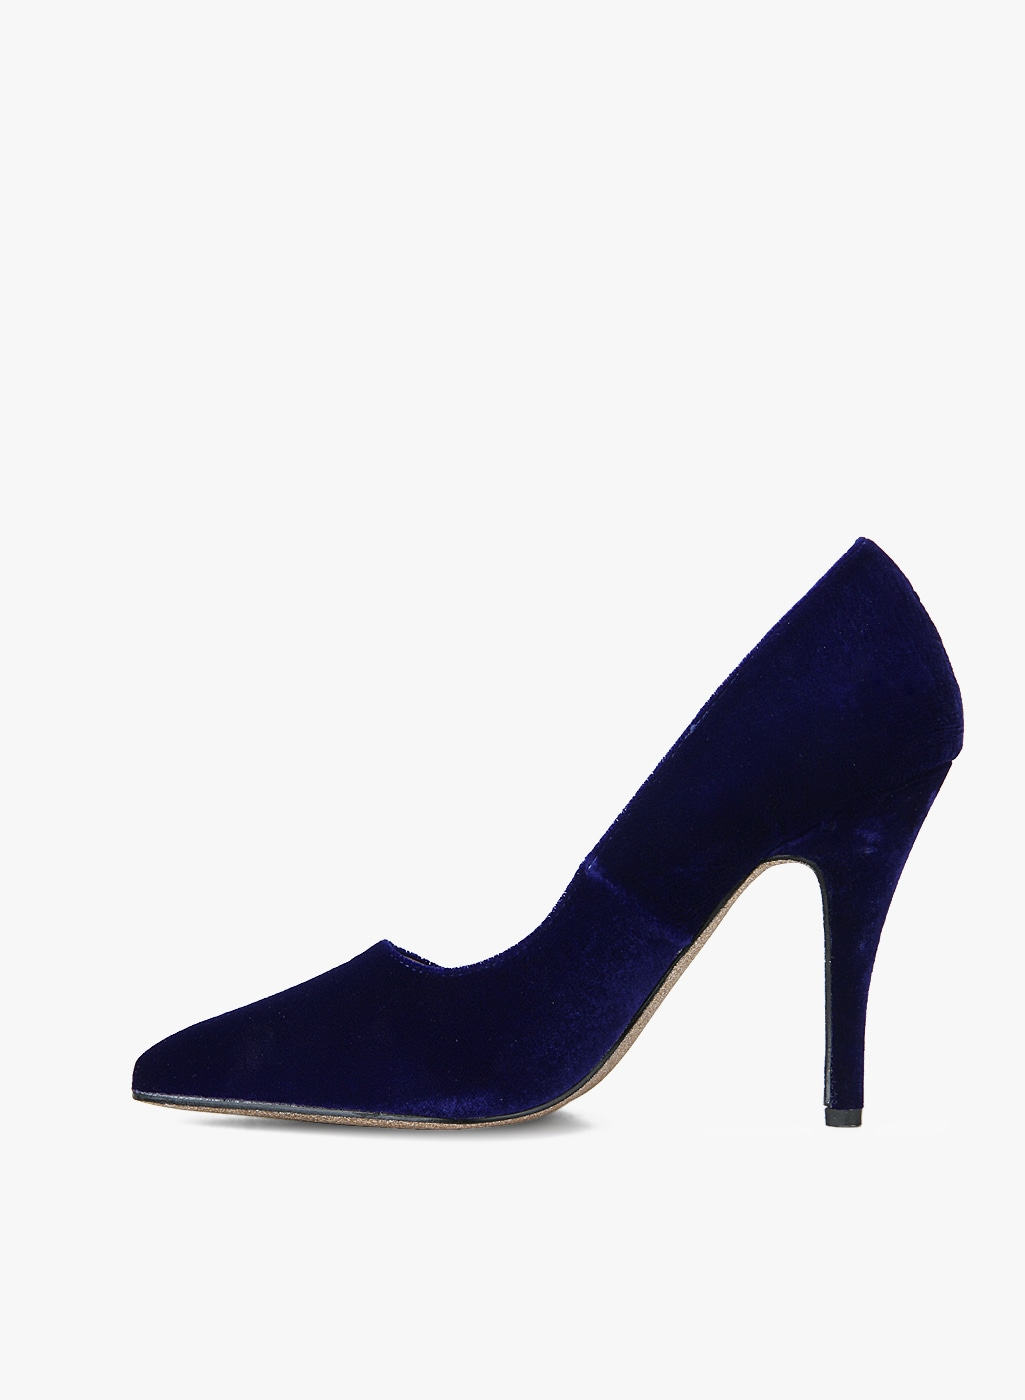 DOROTHY PERKINS Navy Blue Solid Pumps